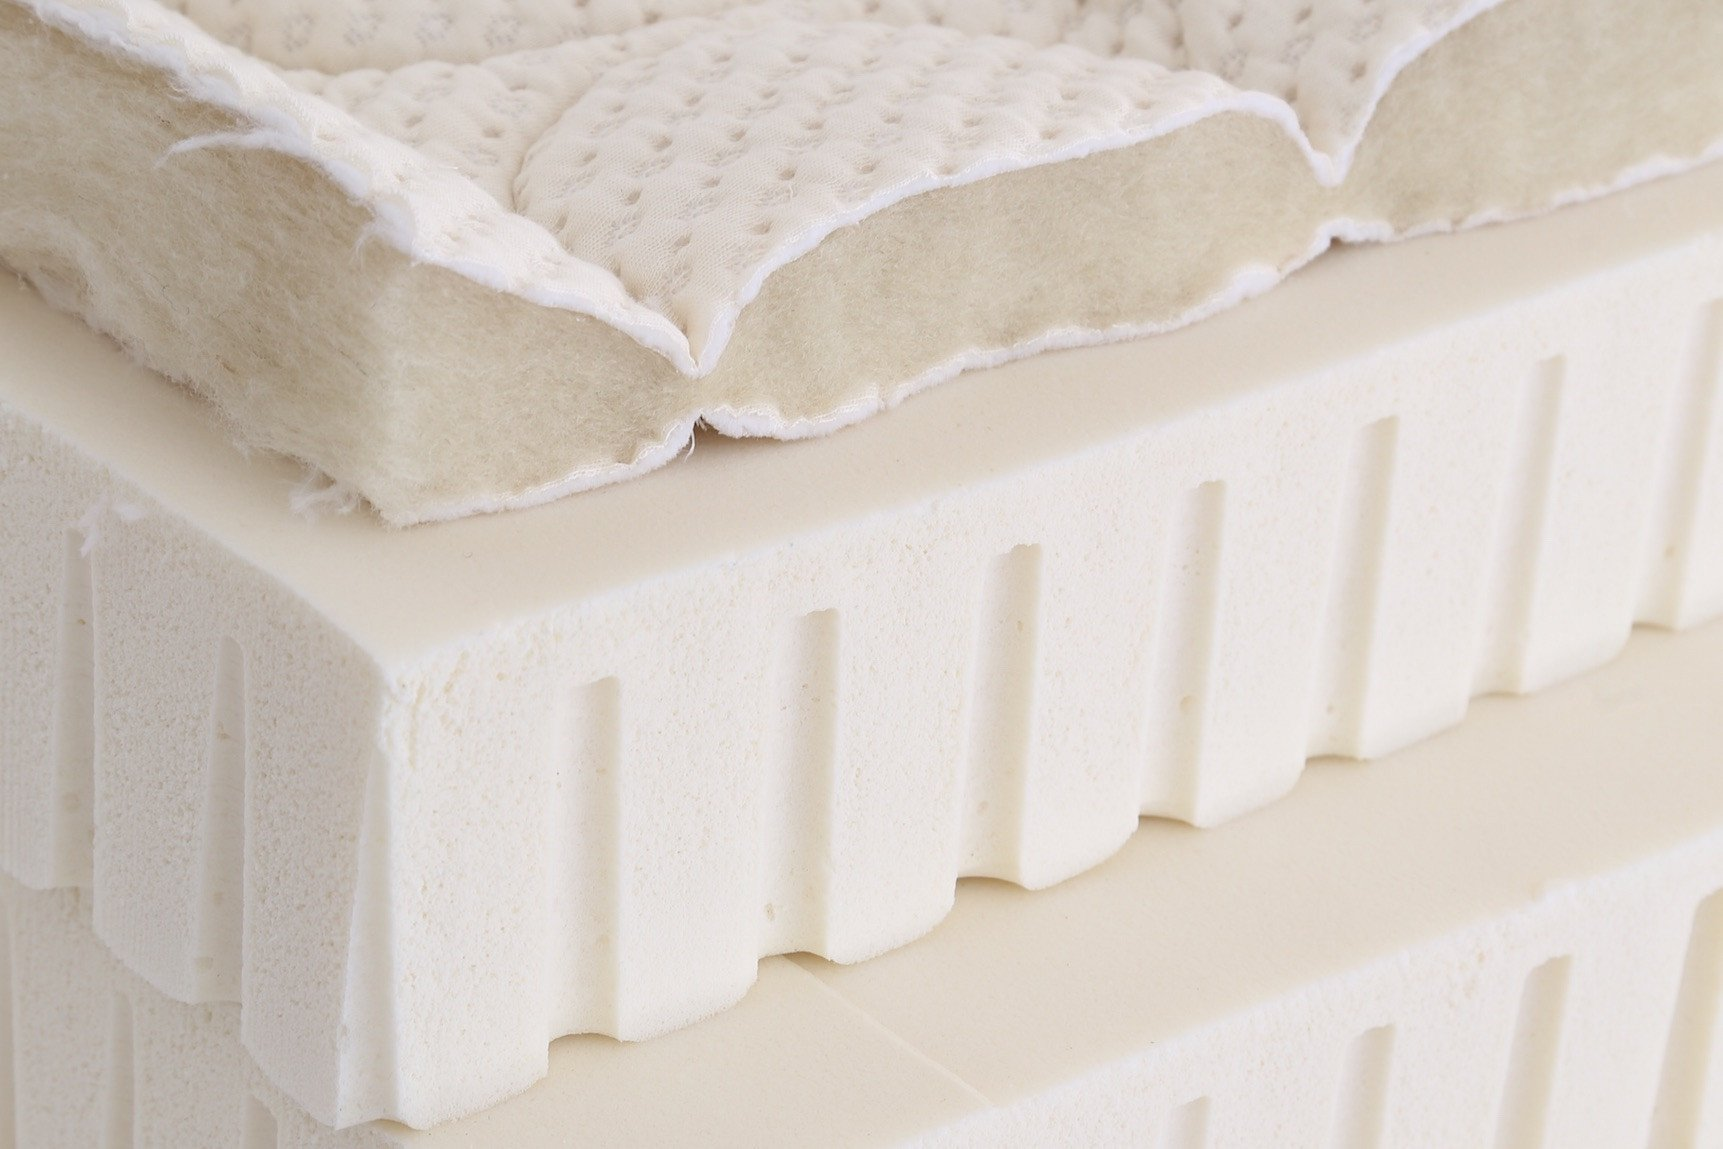 area angeles latex greater natural ca foam mattress talalay talatech los pure core organic